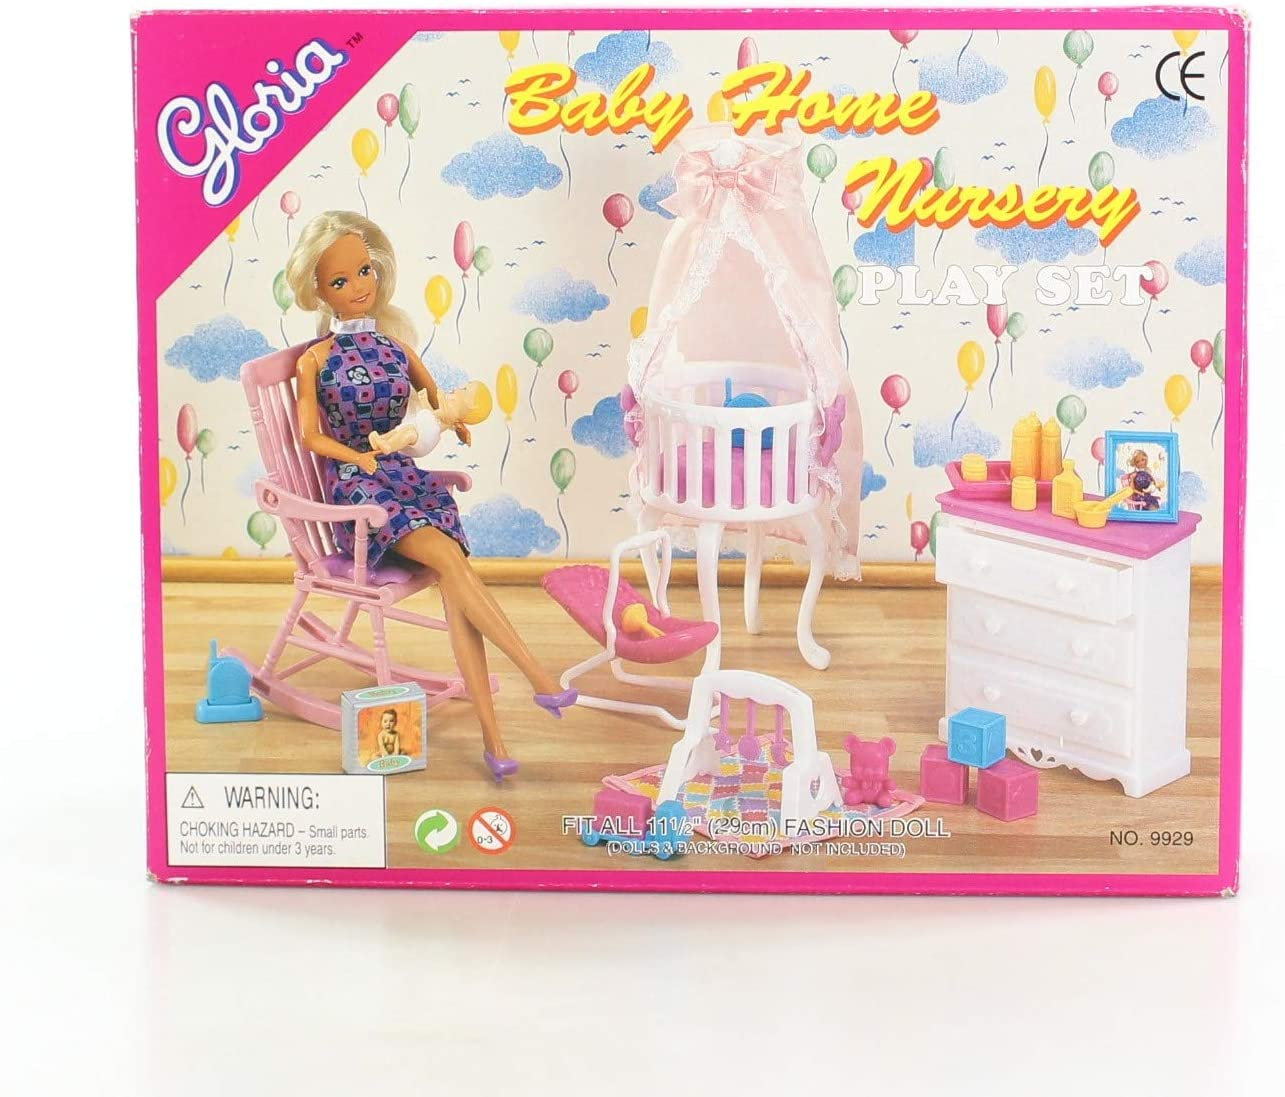 gloria Baby Home Nursery Play Set for Dolls and Dollhouse Furniture Wong on